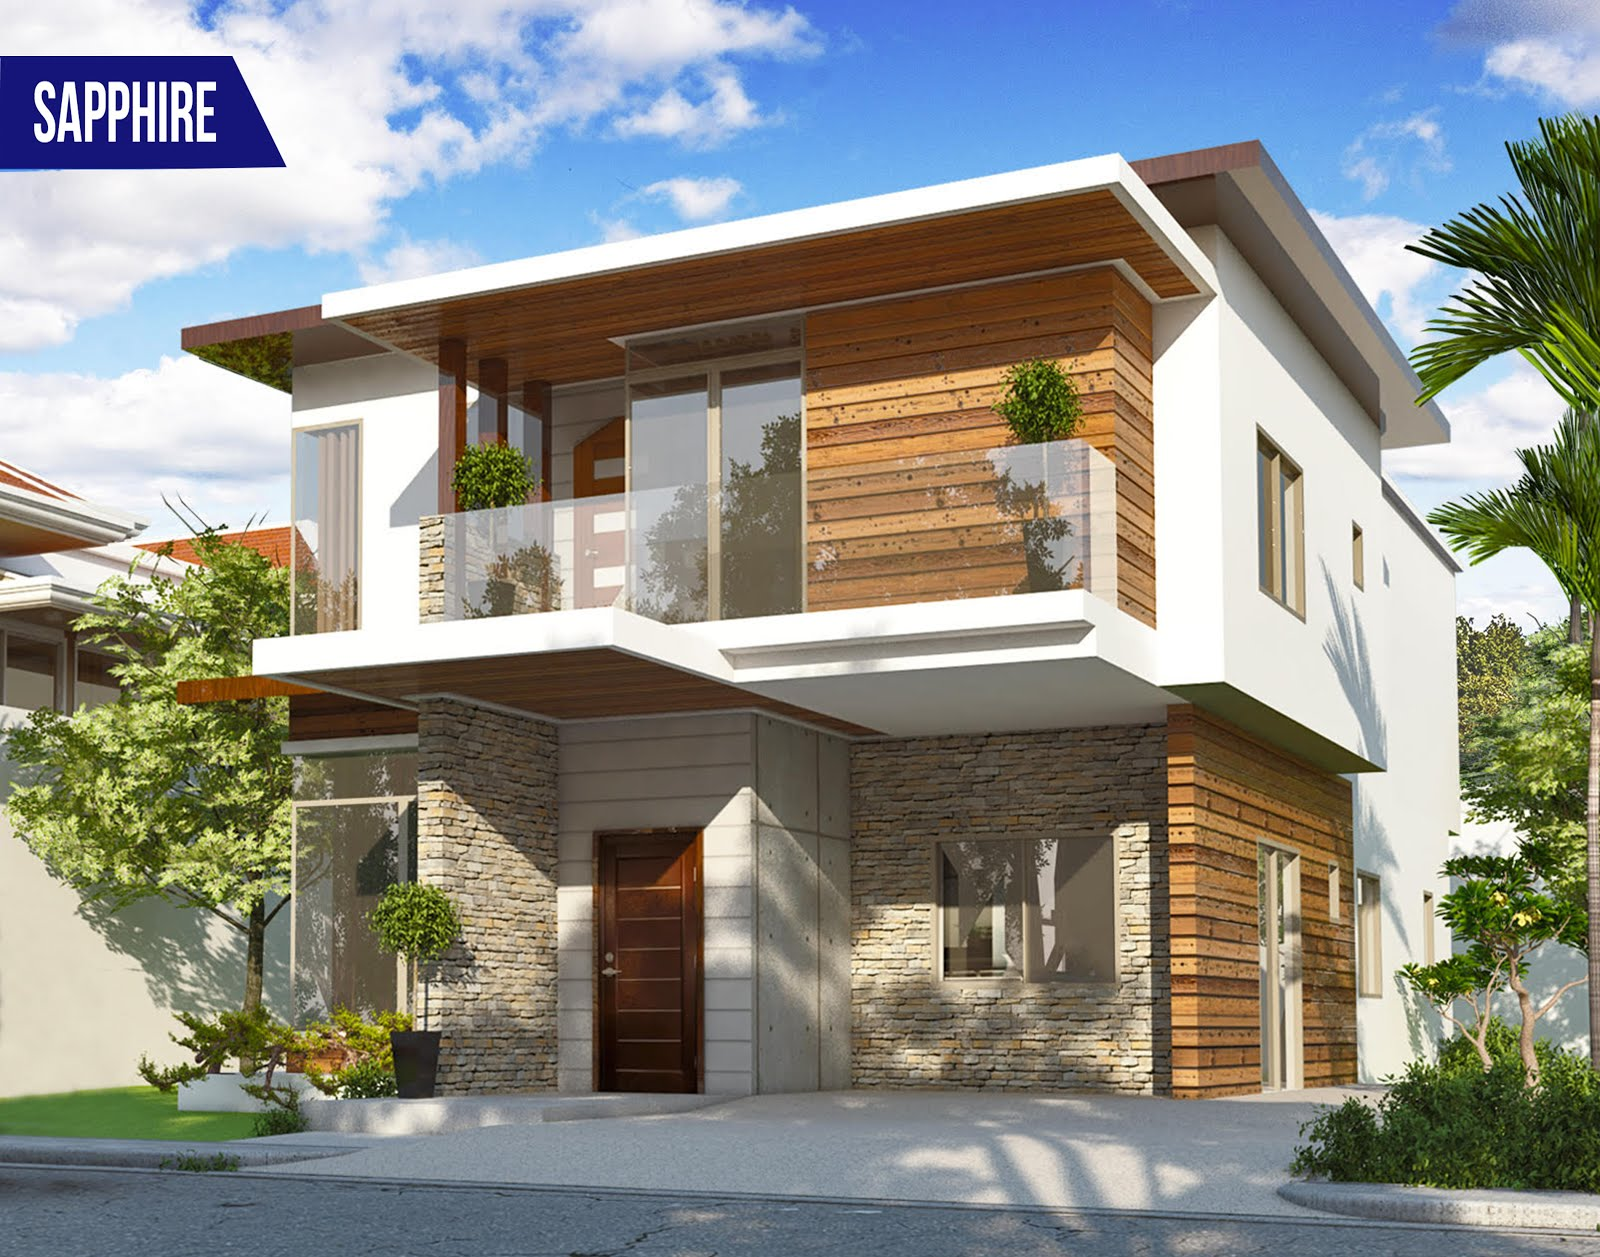 A smart philippine house builder the basics of latest house design - Design basics house plans set ...